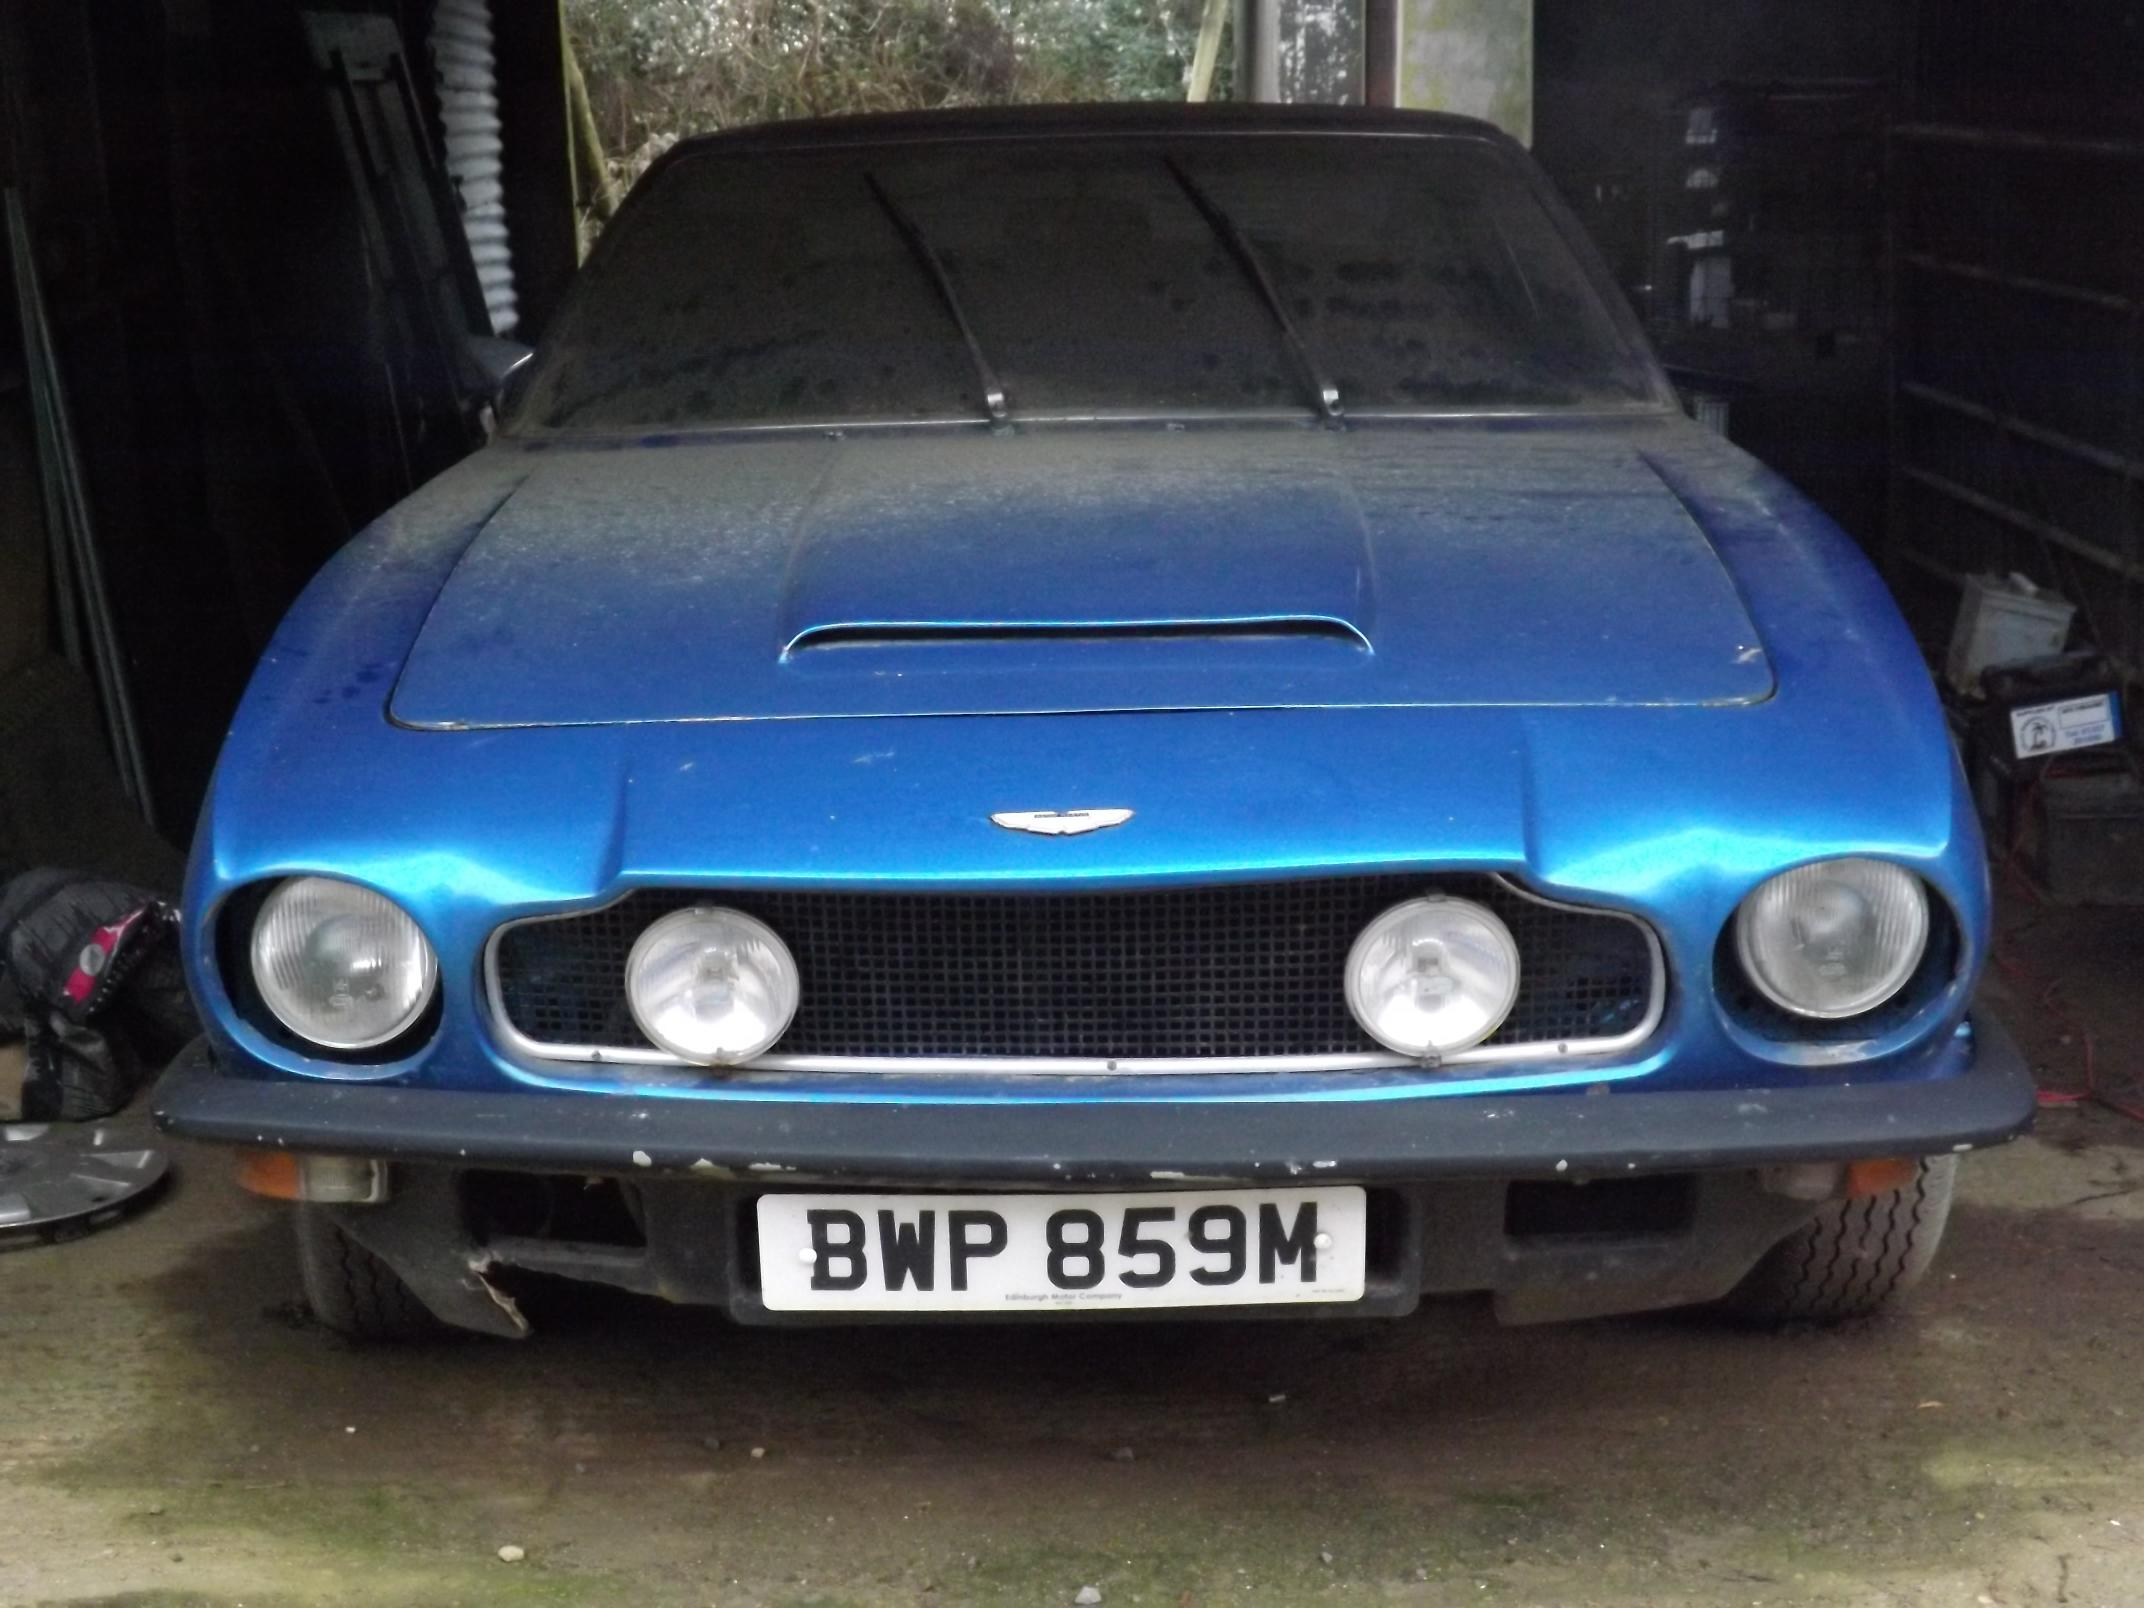 aston martin barn find pair to be auctioned - just british